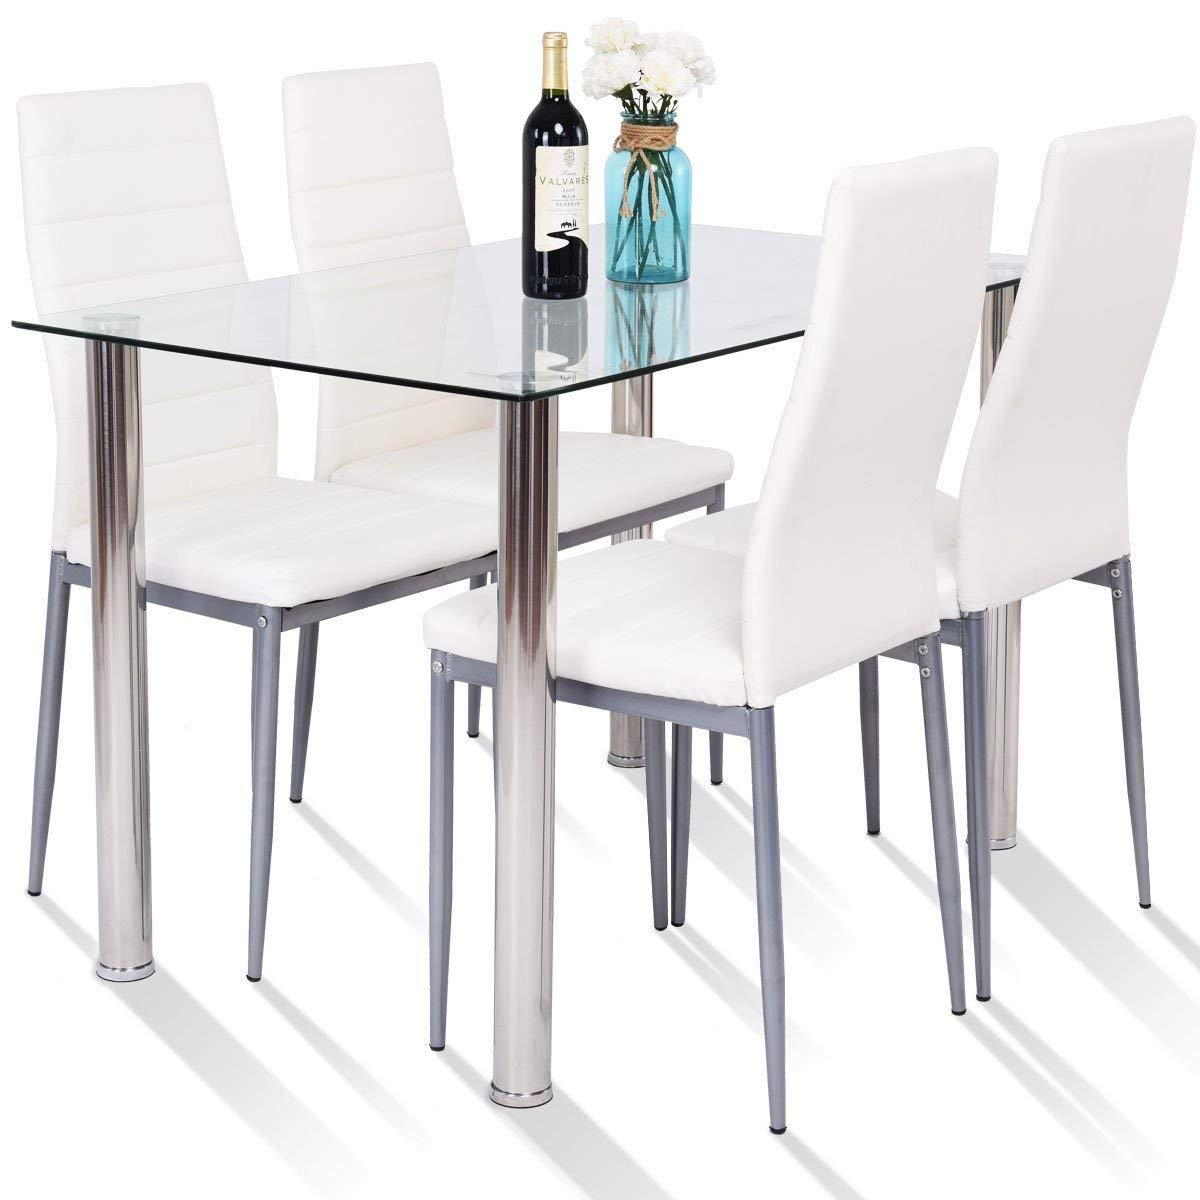 Amazon.com - Tangkula 5 PCS Dining Table Set Modern Tempered ...